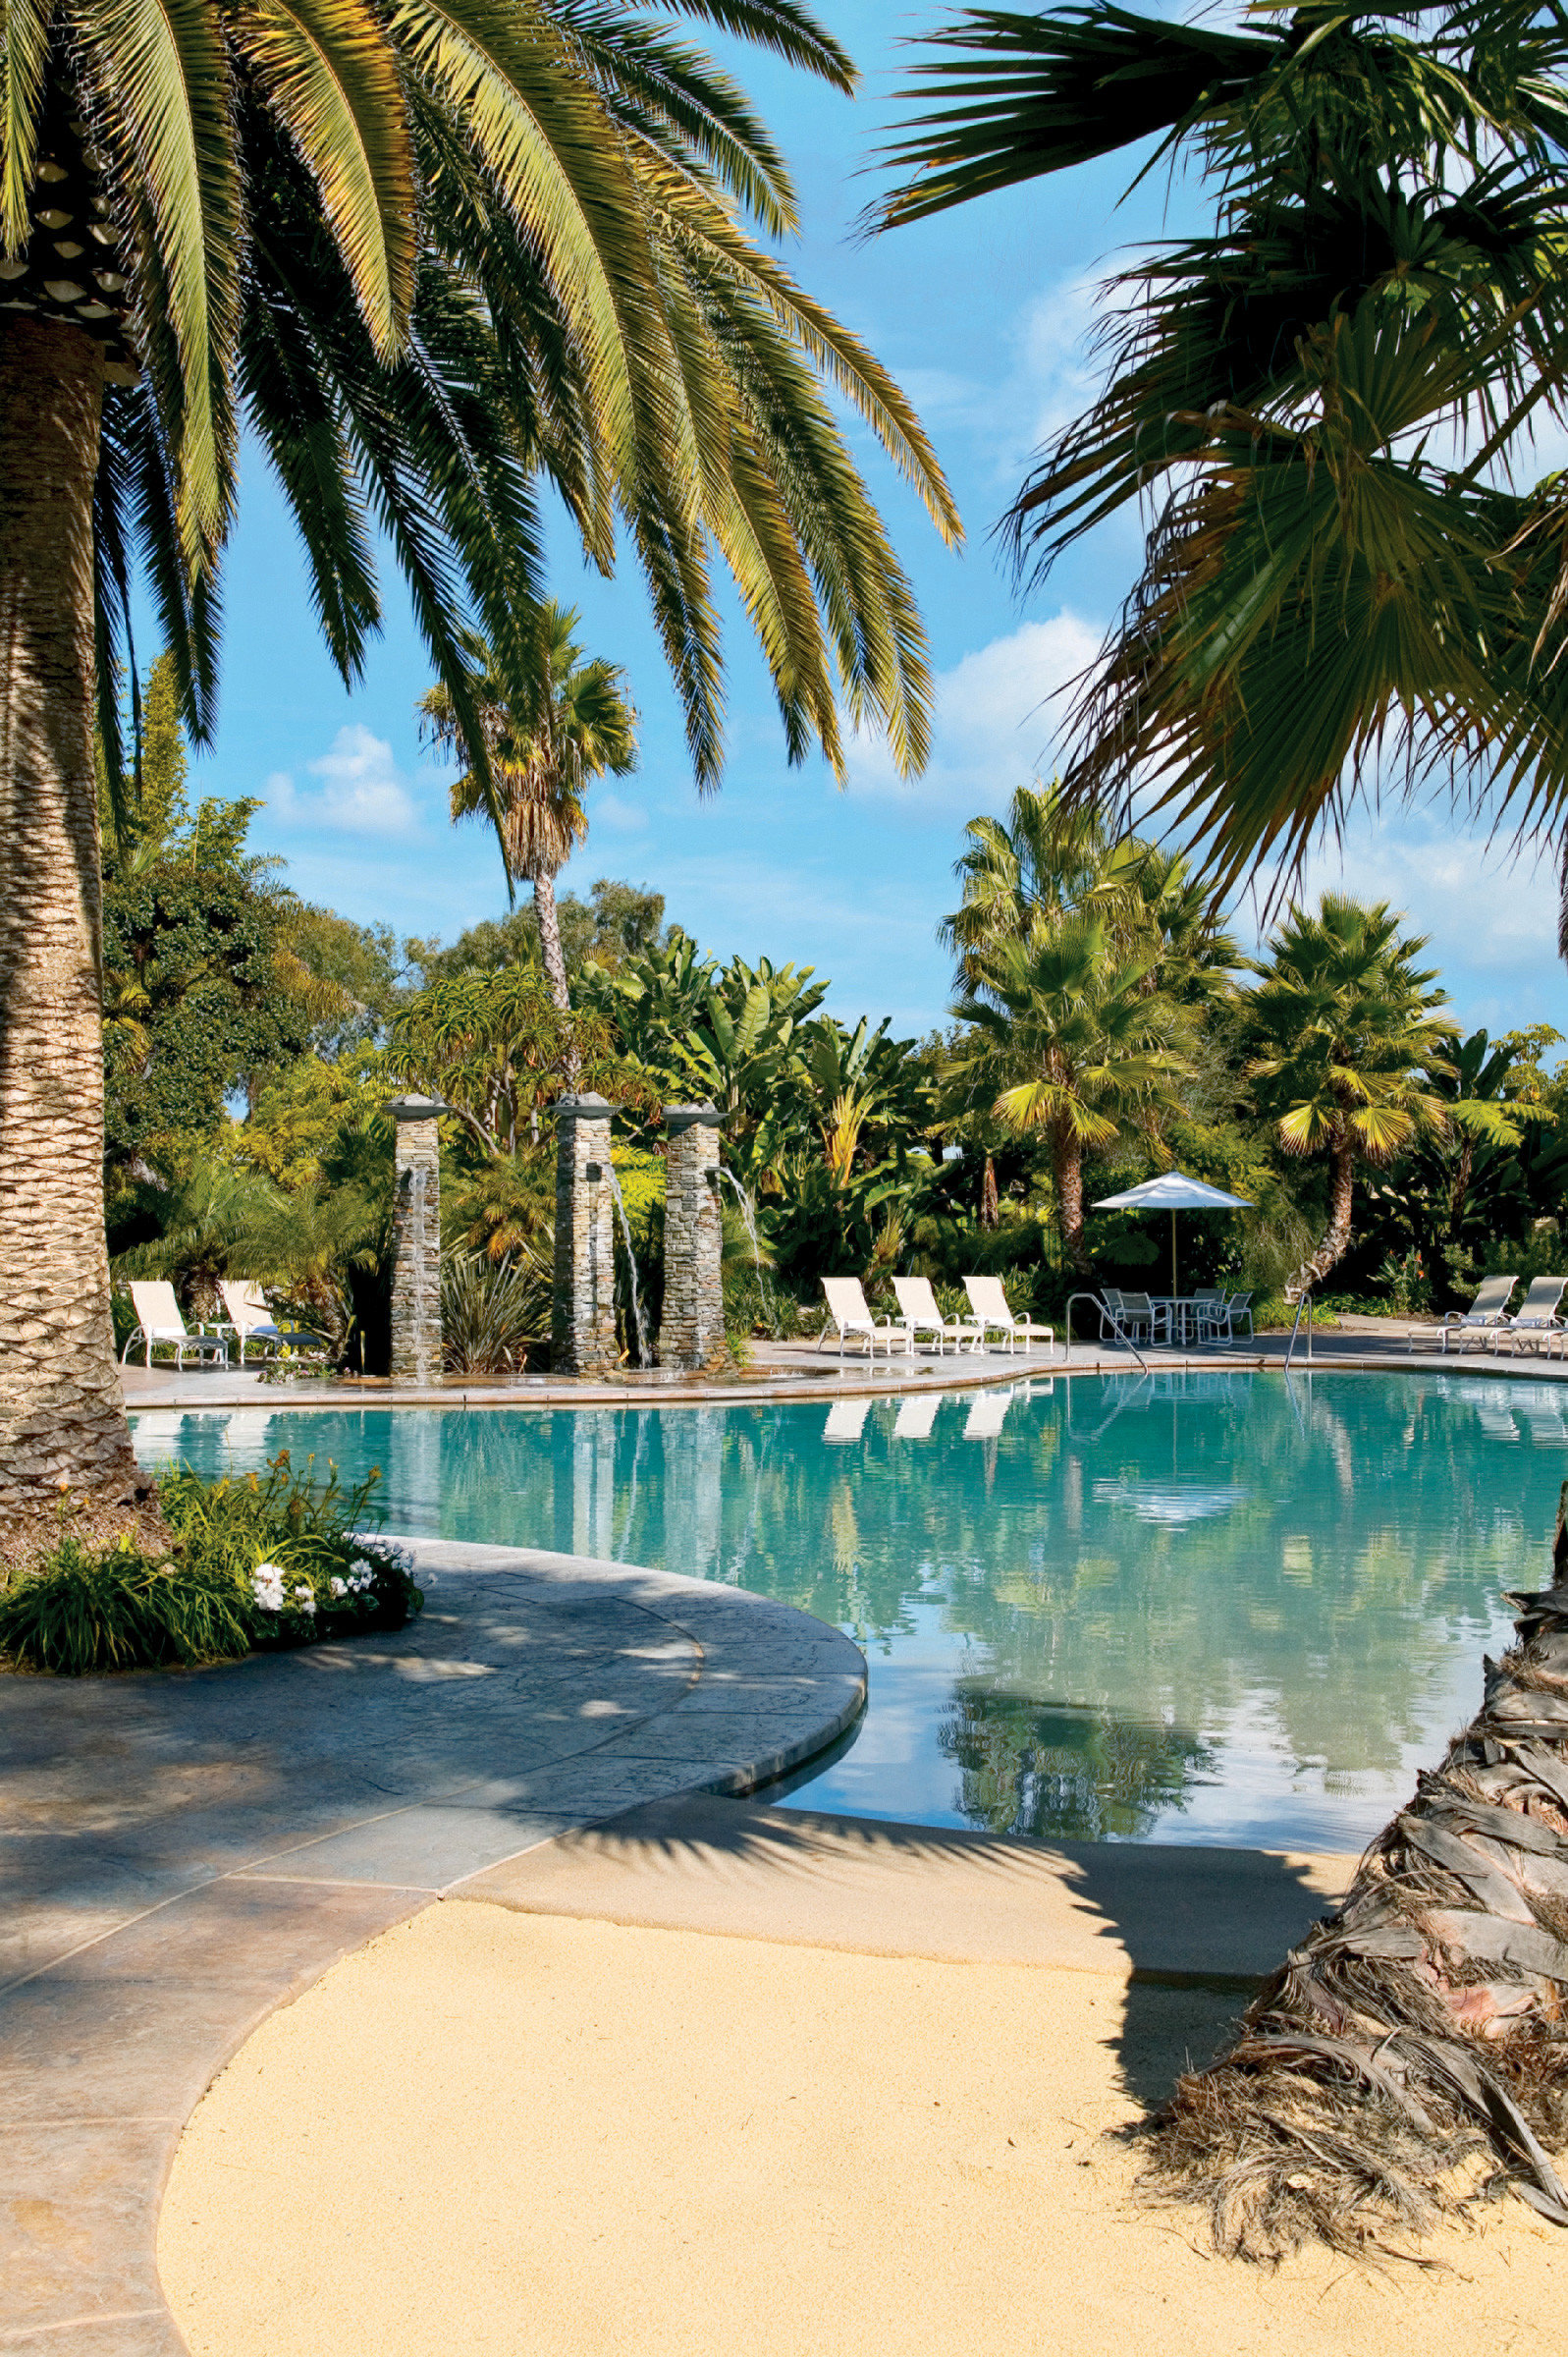 Island Lounge Pool Resort Tropical tree water palm plant swimming pool Beach arecales Sea Ocean tropics palm family Lagoon caribbean surrounded shore